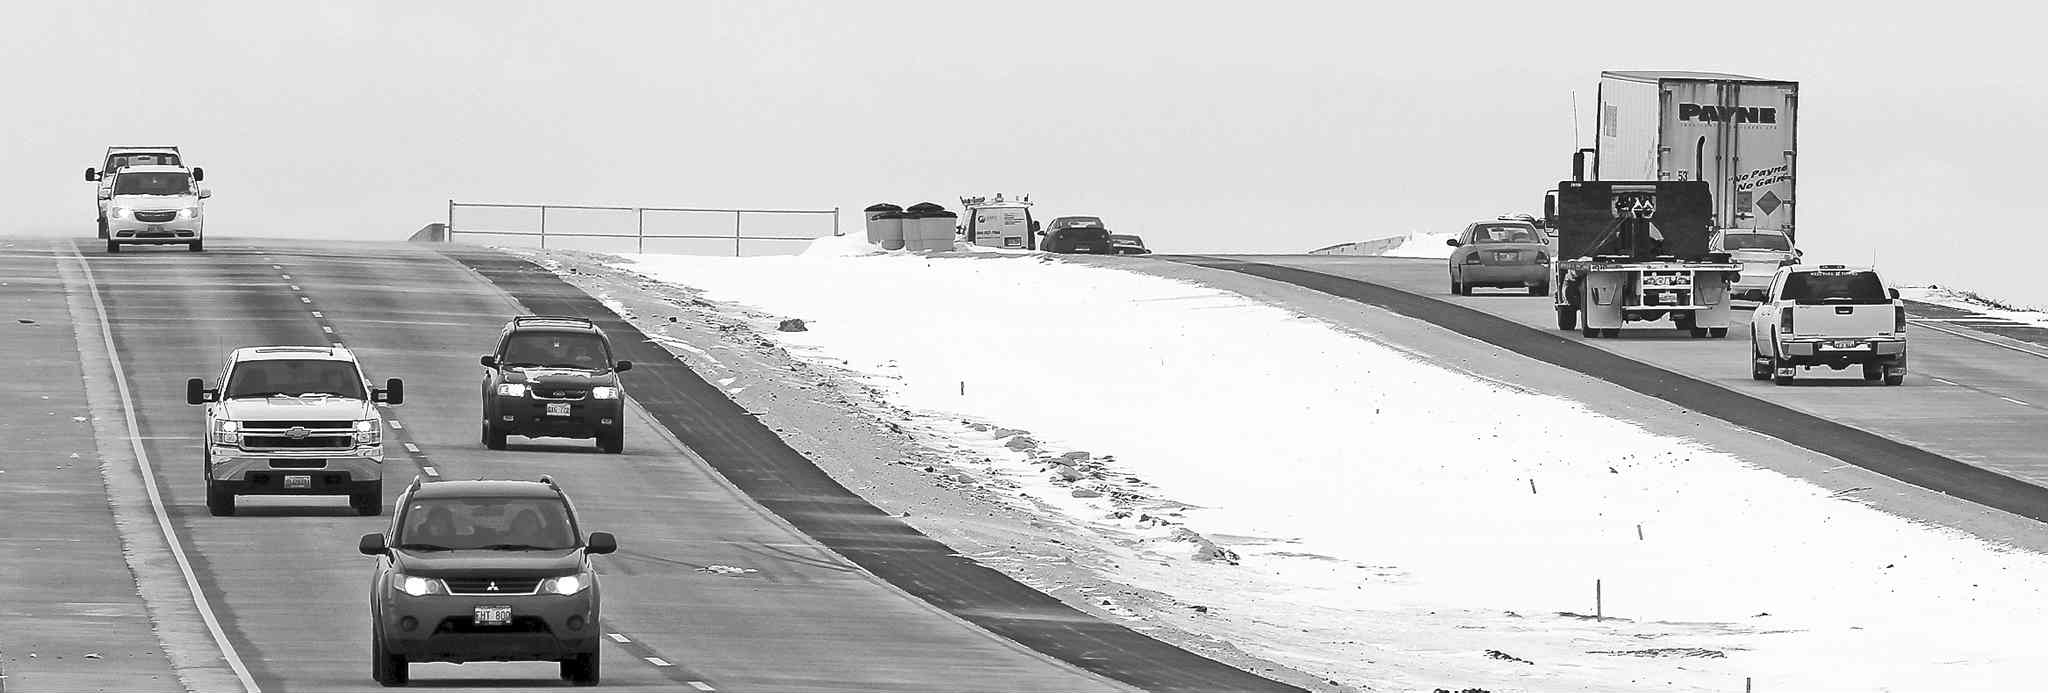 Motorists venturing onto Manitoba highways will soon be able to find out what conditions are like before leaving home, thanks to new webcams being installed by the province.